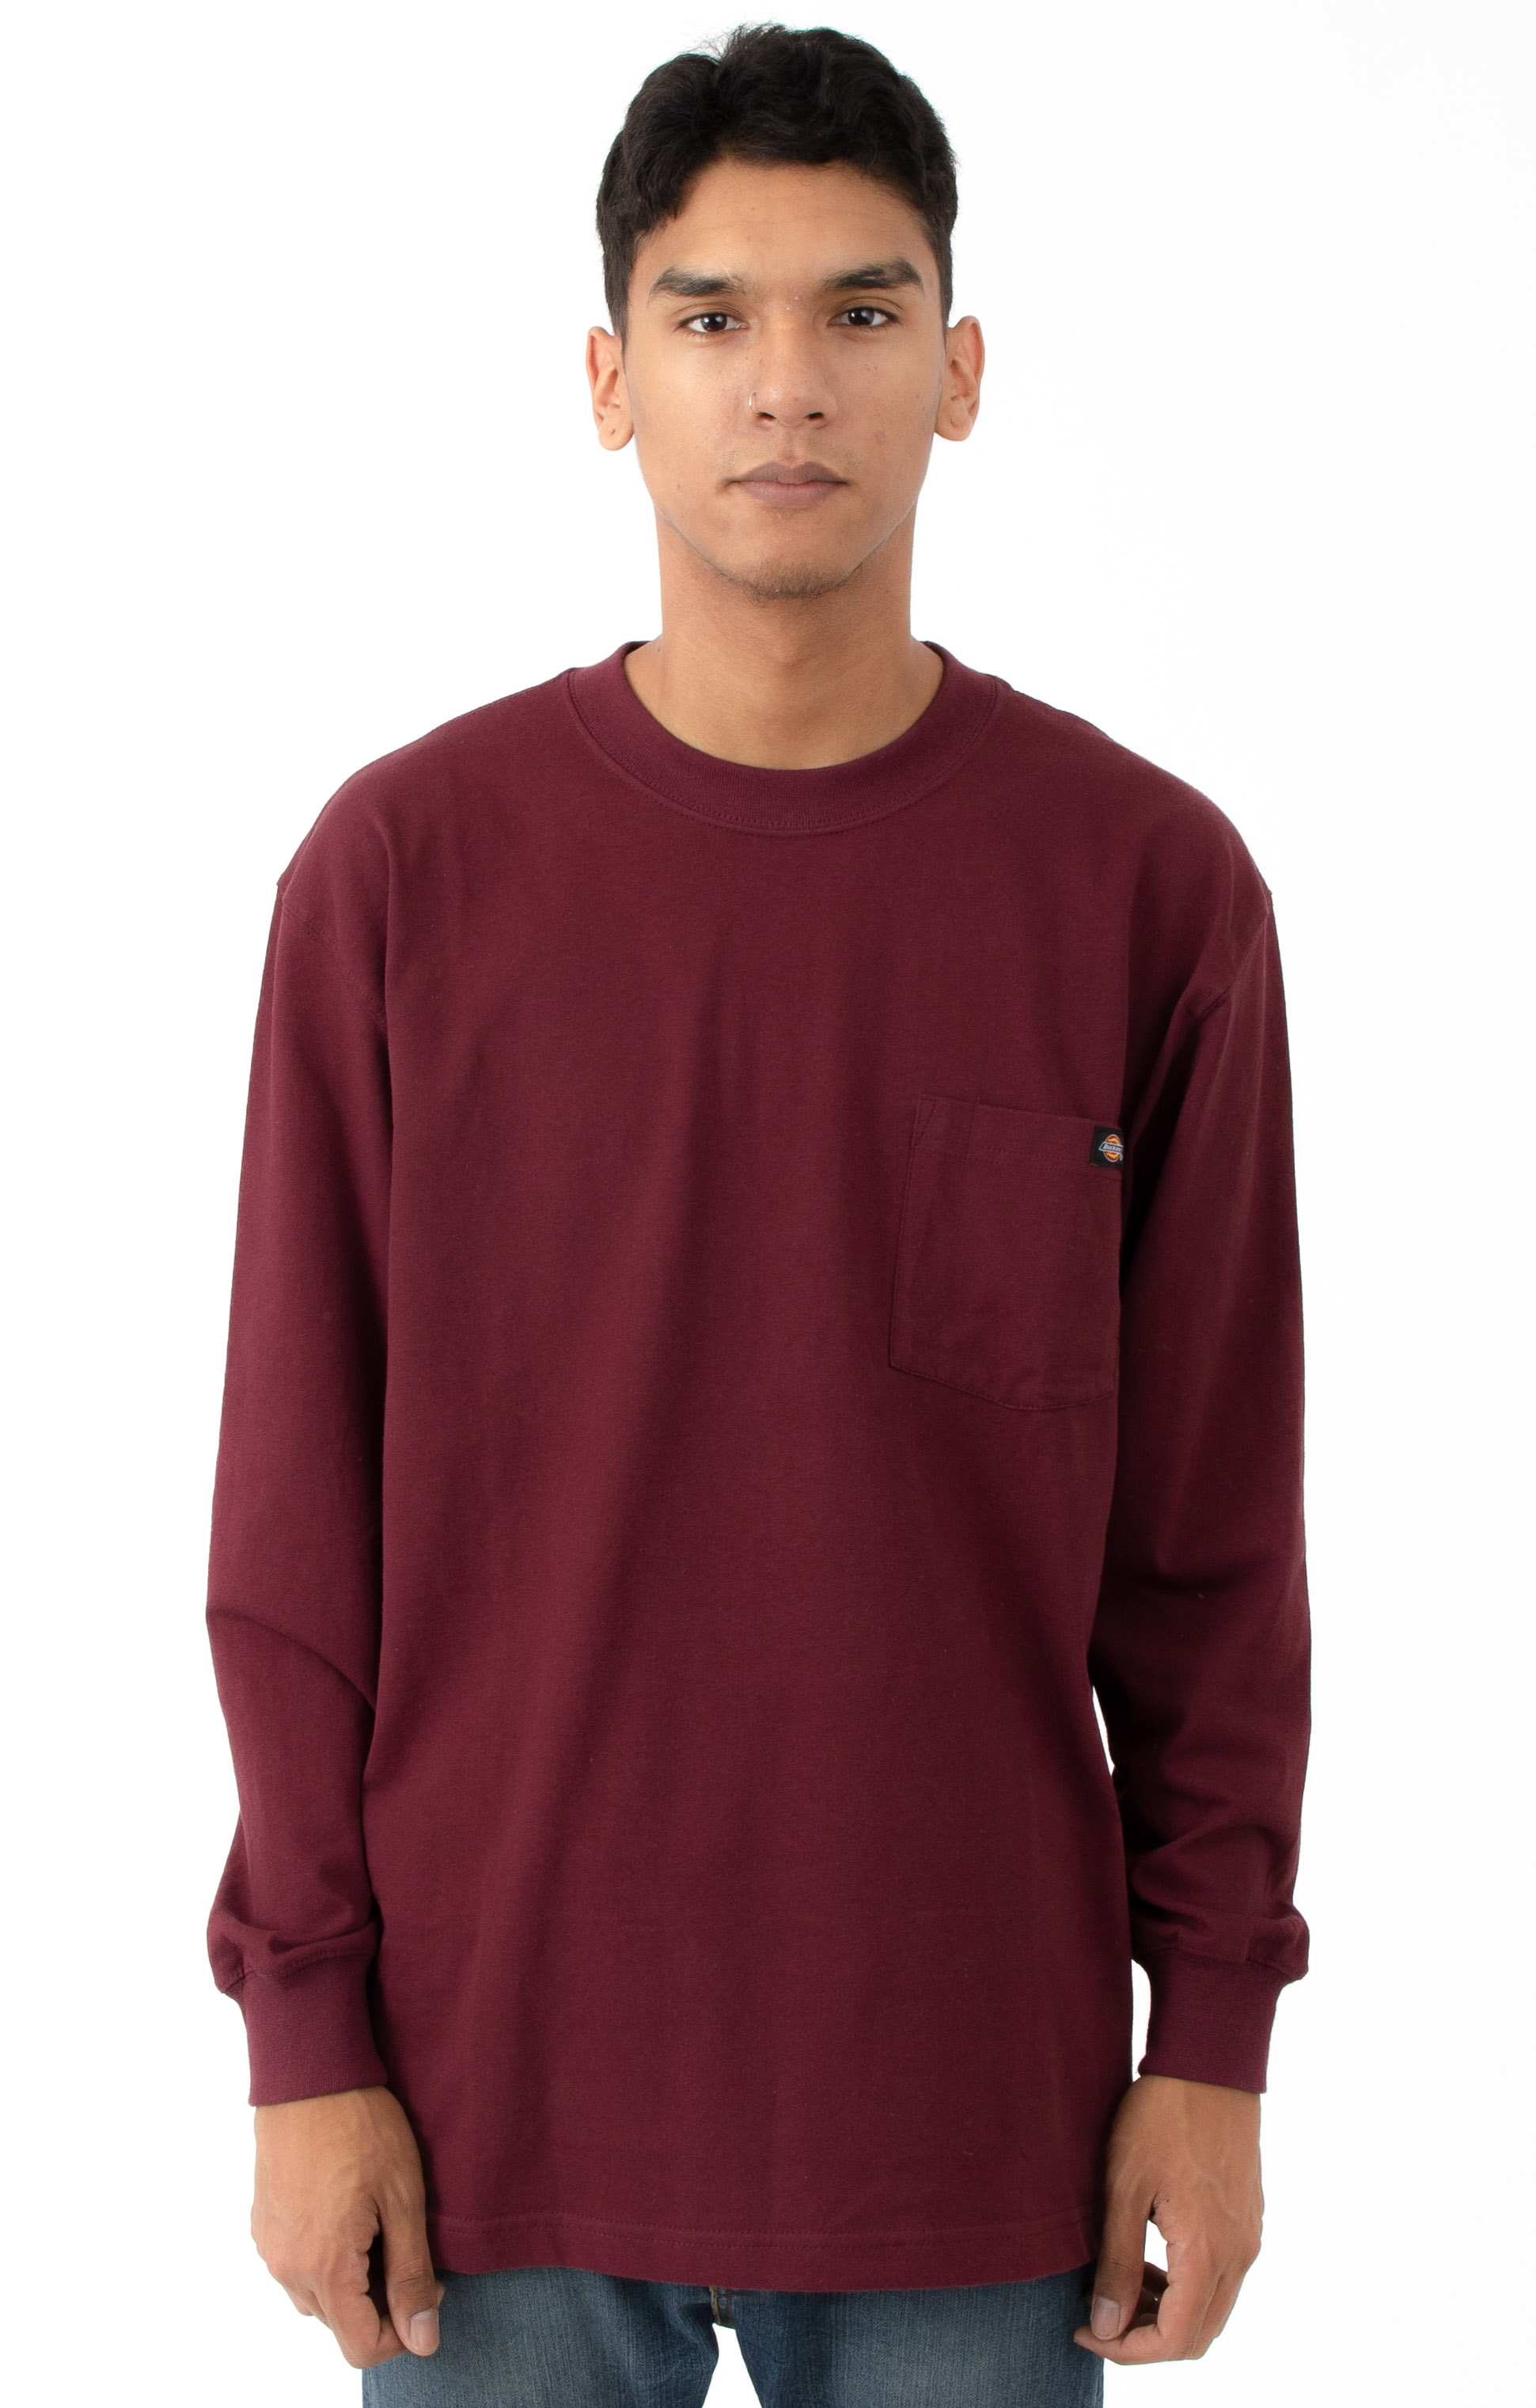 (WL450BY) Long Sleeve Heavyweight Crew Neck Shirt - Burgundy